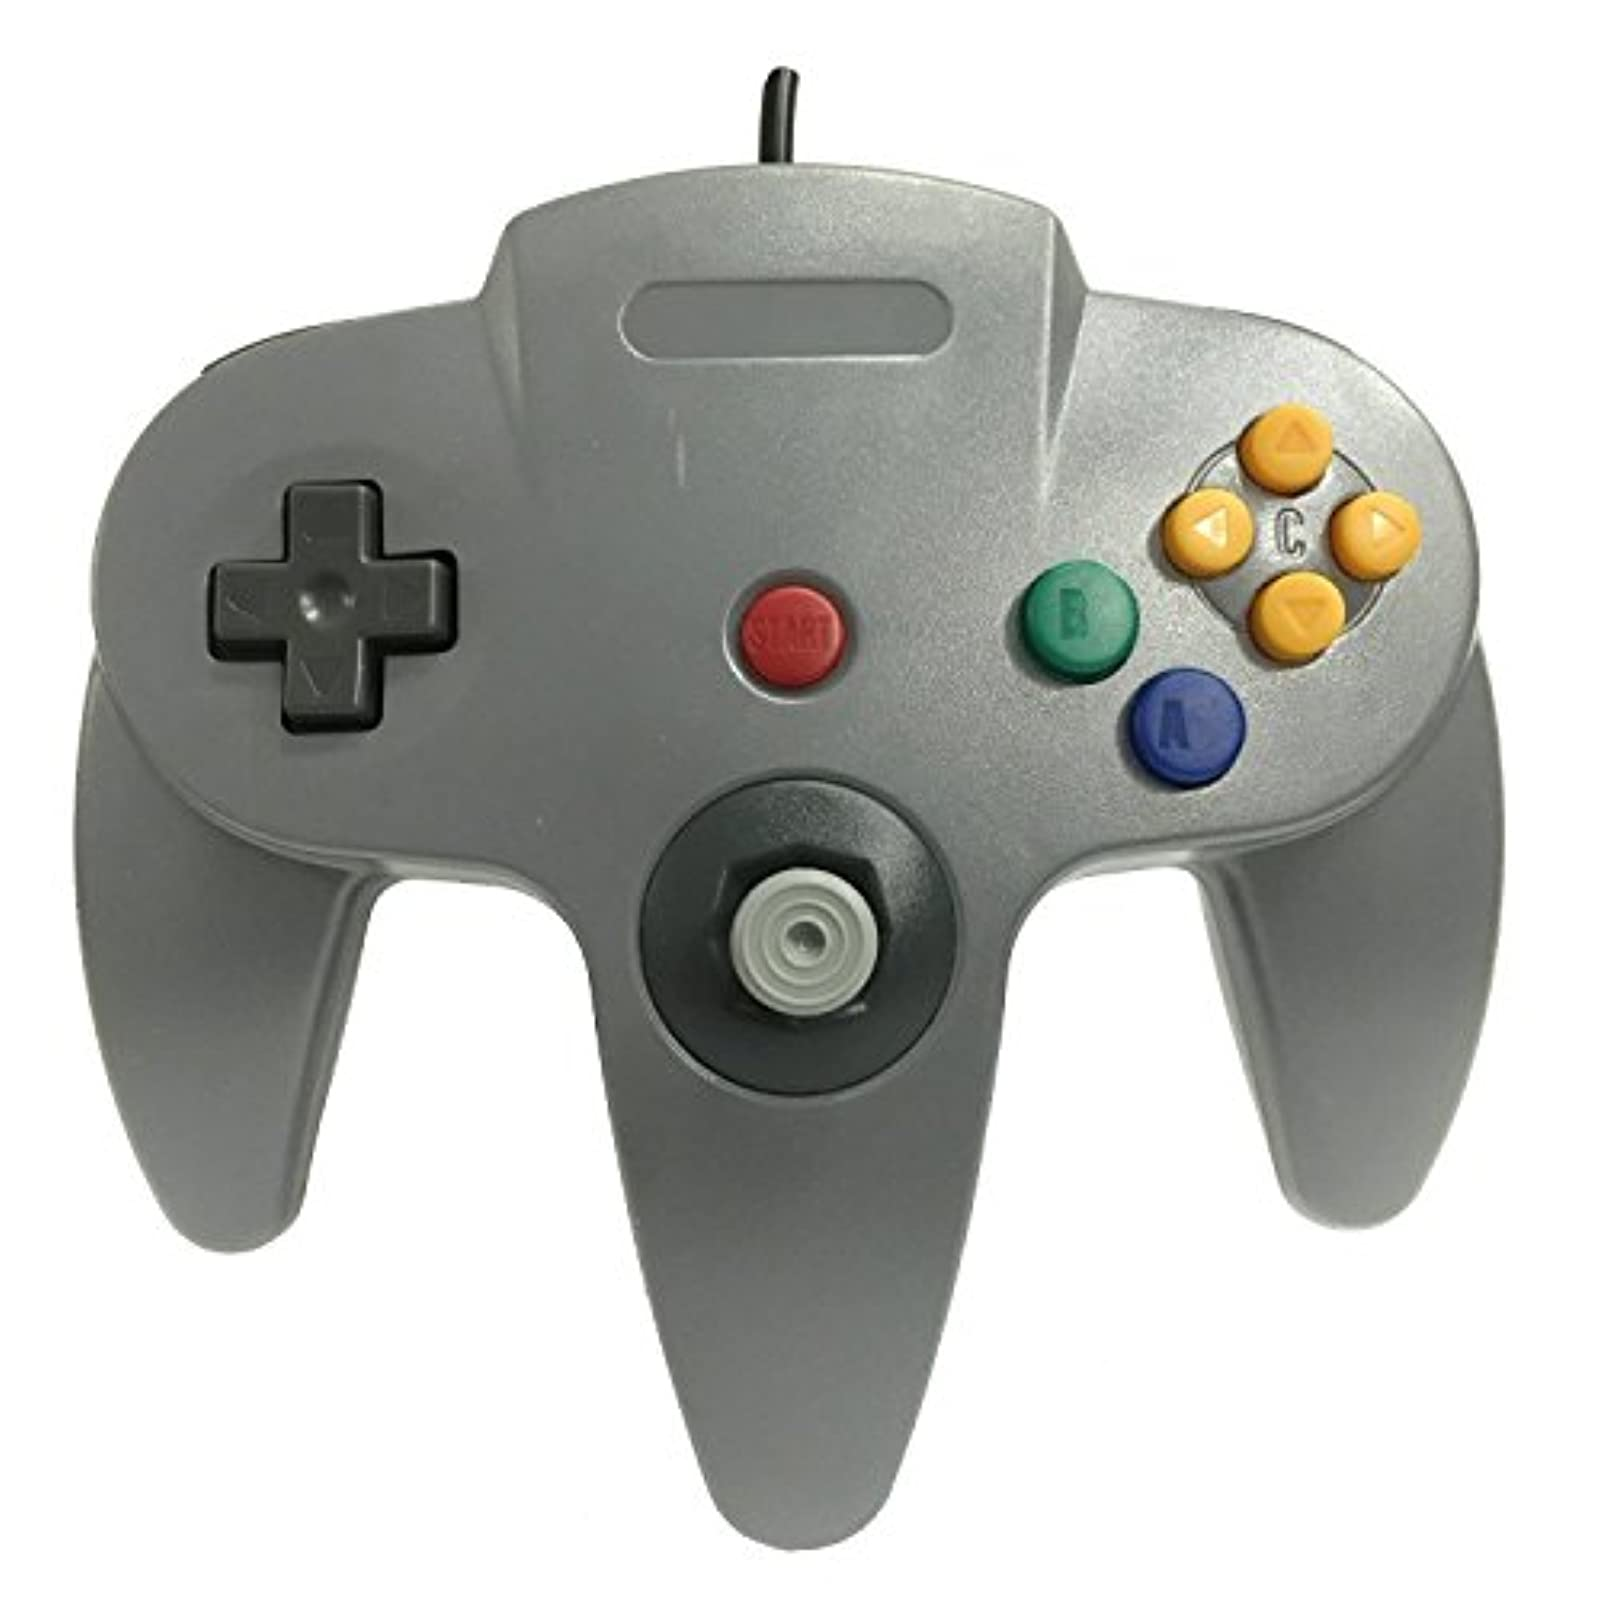 Generic Classic Wired Controller Joystick For Nintendo 64 N64 Game System